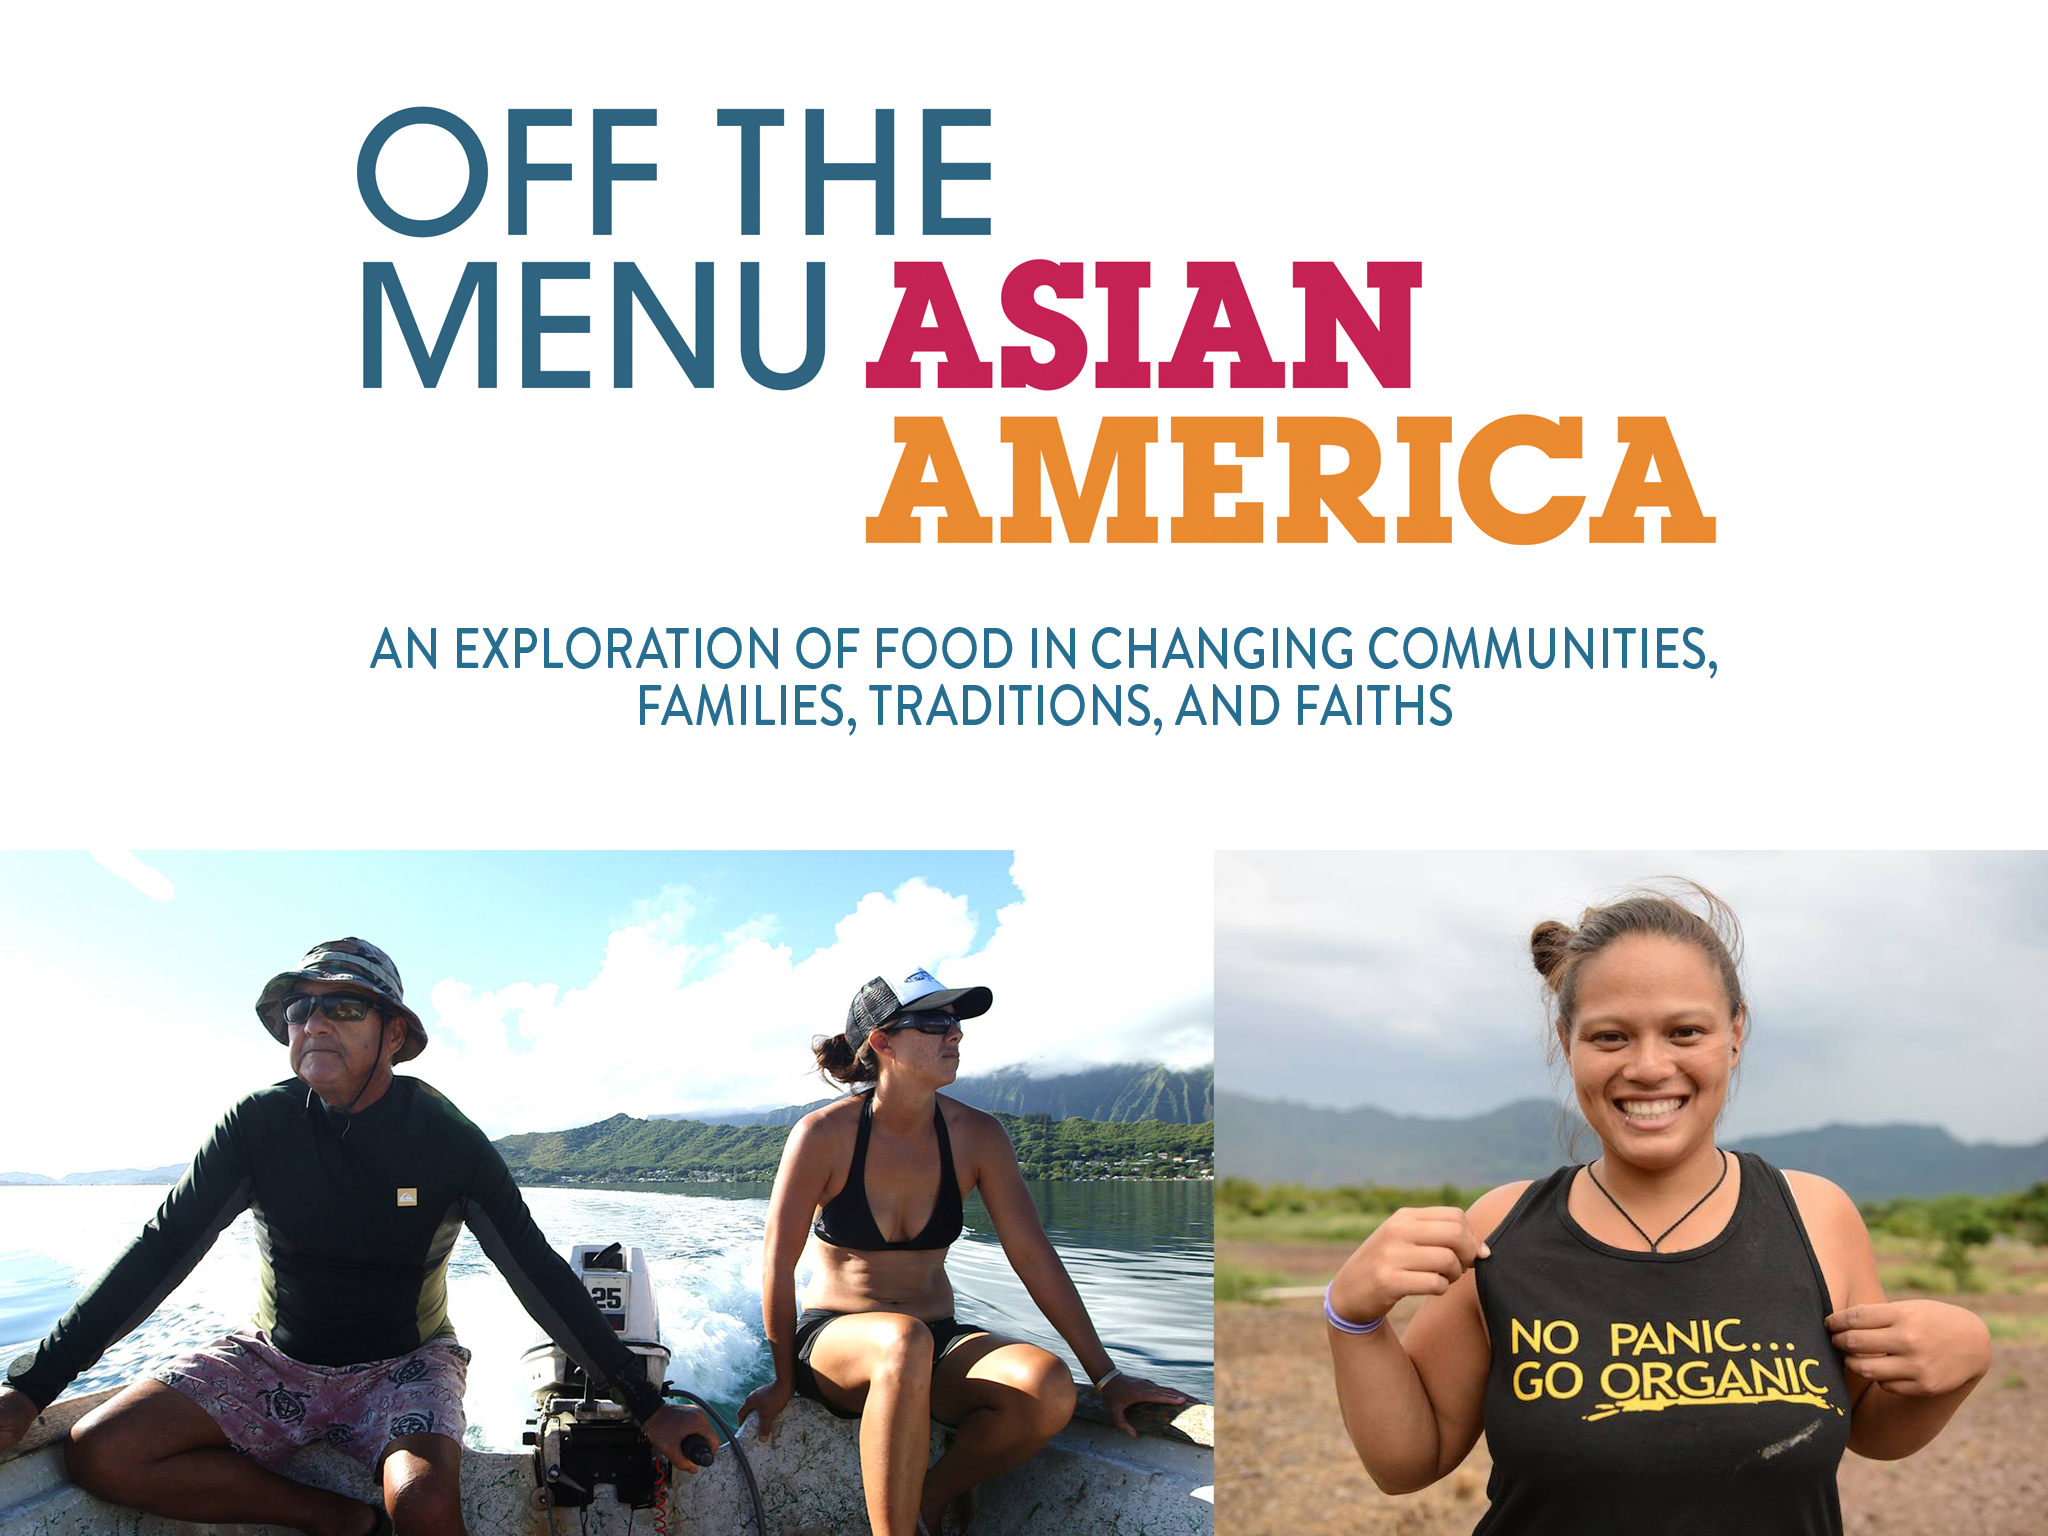 From the Gulf Coast of Texas to the heartland of Wisconsin to New York's Lower East Side and beyond, OFF THE MENU: Asian America delves into a wealth of stories, traditions, and unexpected characters that explore what it means to be Asian American today. Directed by Grace Lee, co-produced by CAAM and KQED.